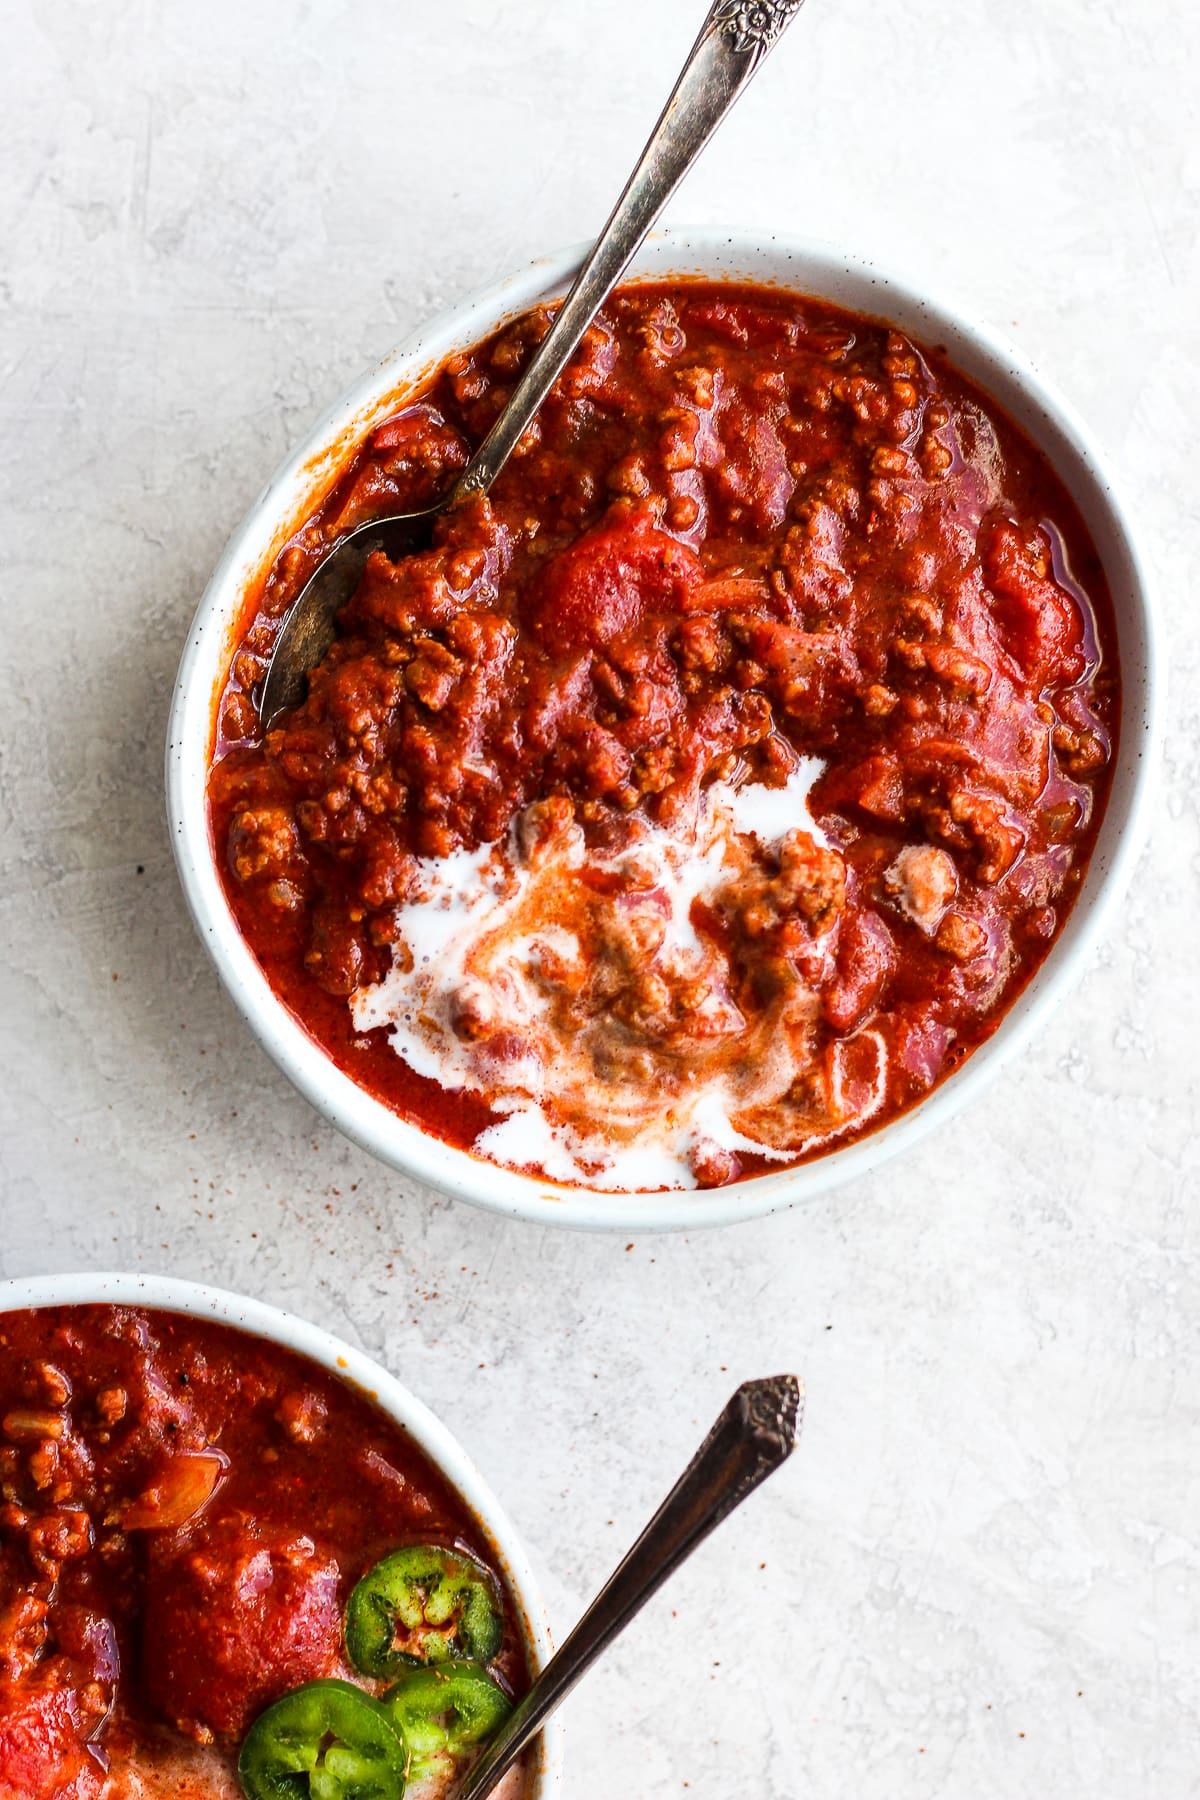 The Absolute Best Classic Paleo Chili - the simple classic, but made paleo and Whole30! So simple an turns out perfectly EVERY time! #whole30 #paleo #glutenfree #dairyfree